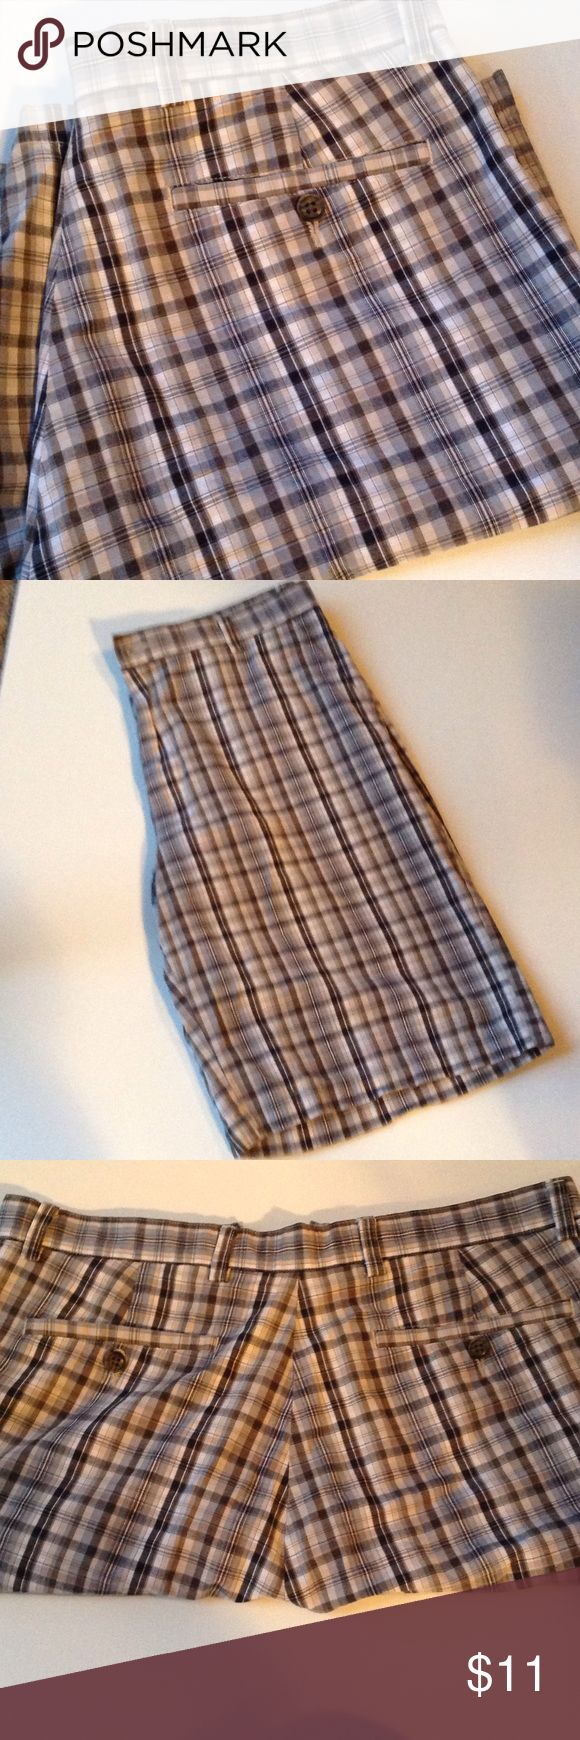 Nice Flat Front Men's Plaid Shorts Nice plaid flat front shorts , like new Shorts Flat Front